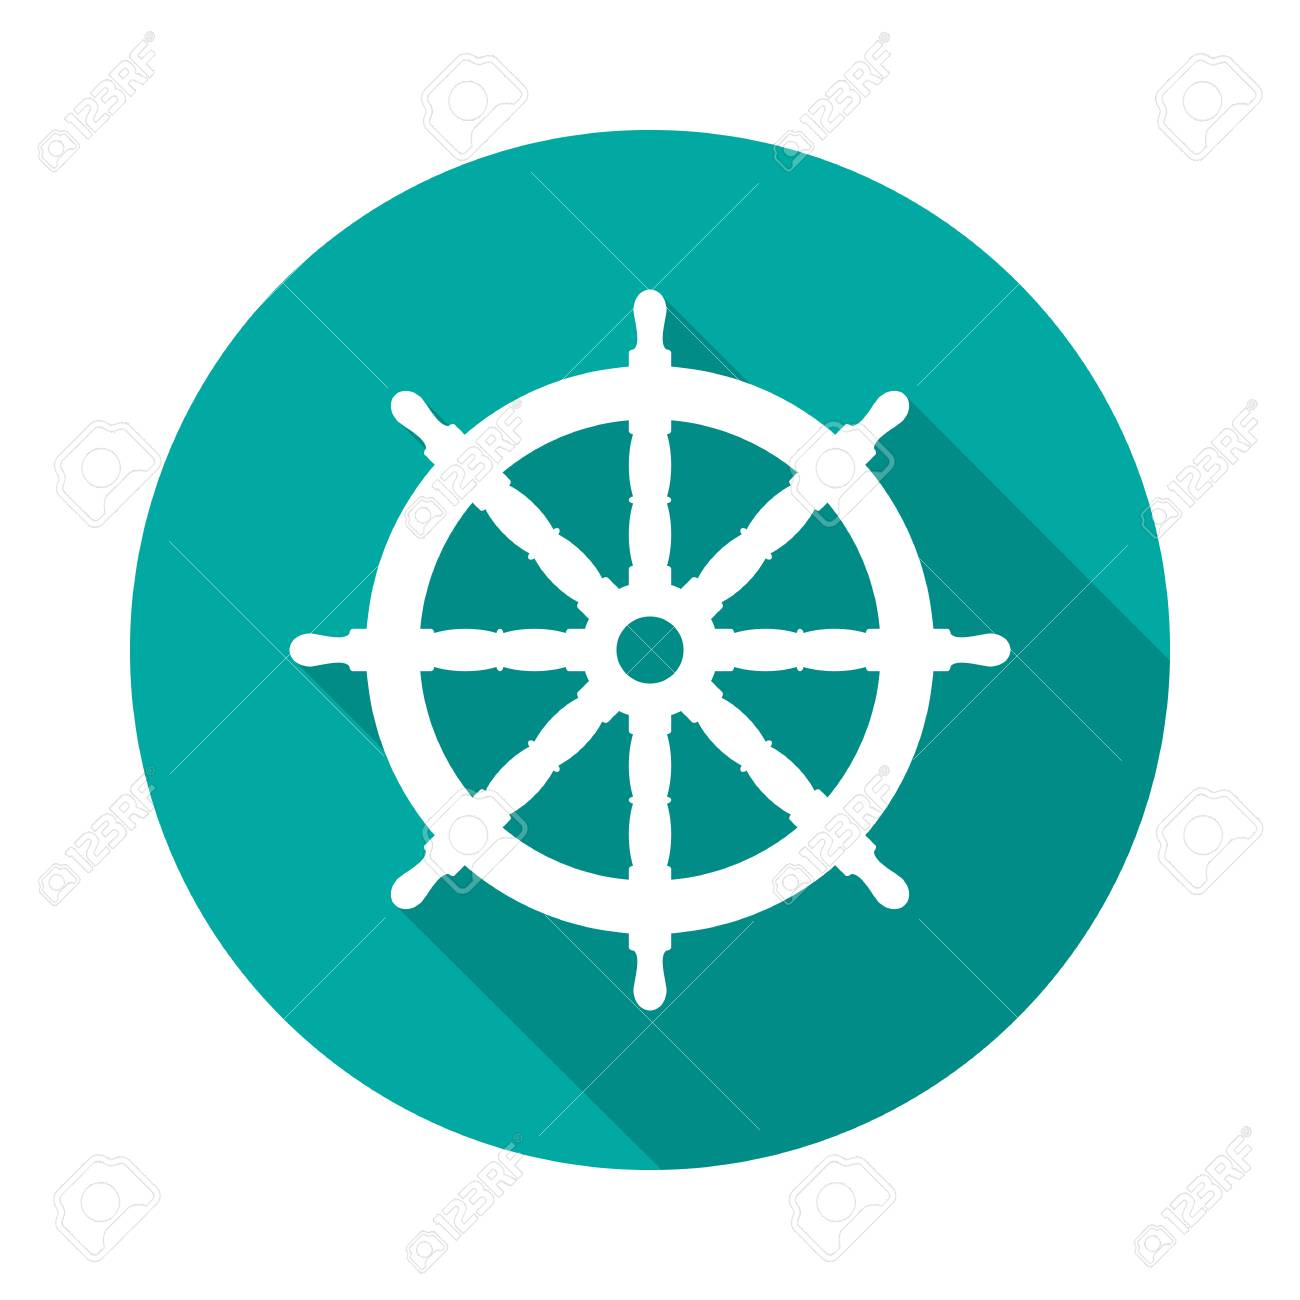 90322827-boat-steering-wheel-circle-icon-with-long-shadow-flat-design-style-ship-helm-simple-silhouette-moder.jpg